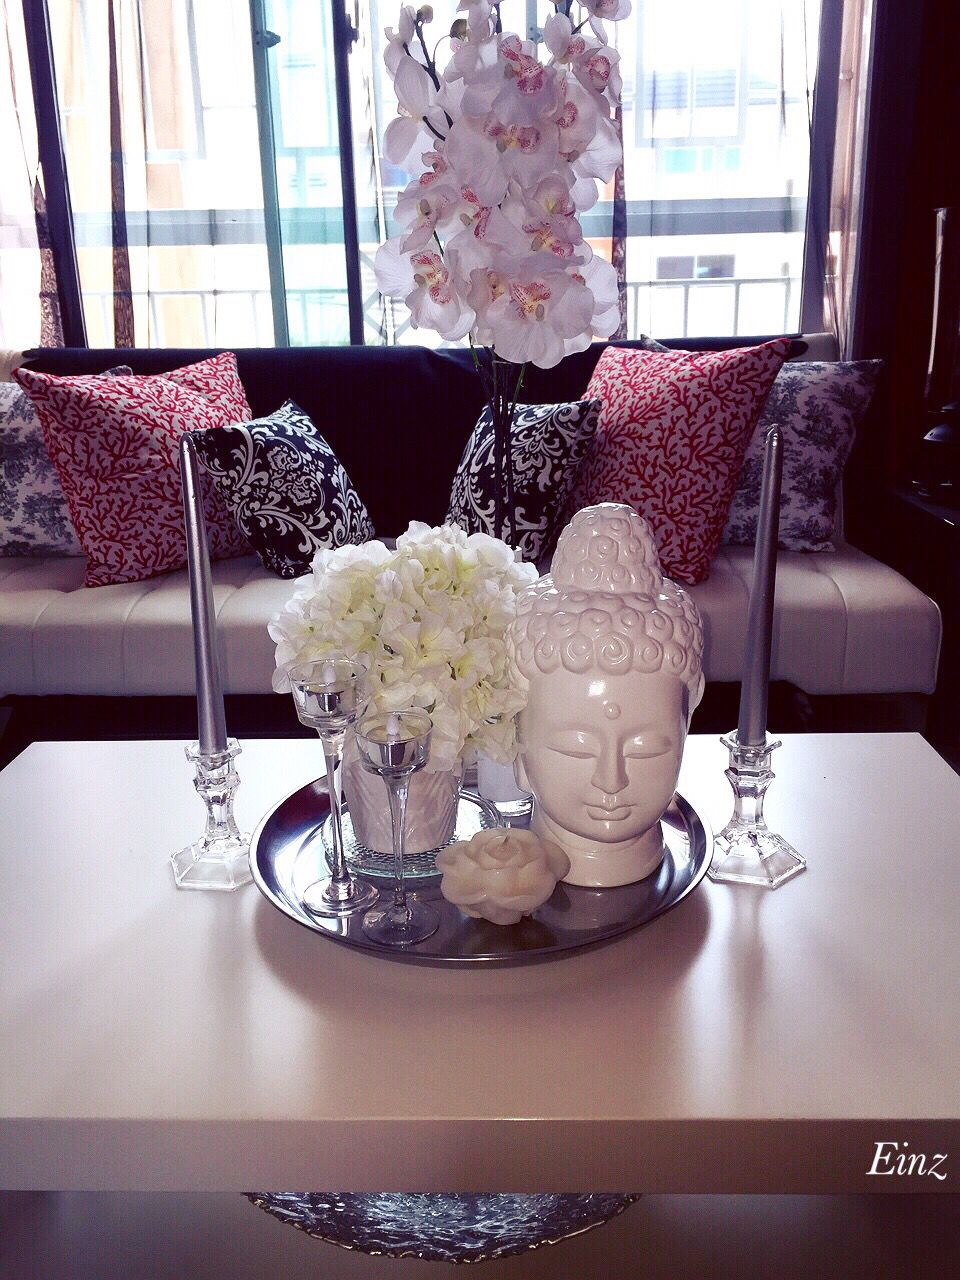 White Silver Coffee Table Decor Hydrangeas Orchids Buddha Head Glass Candle Holders Decorating Coffee Tables Glass Coffee Table Decor Elegant Coffee Table